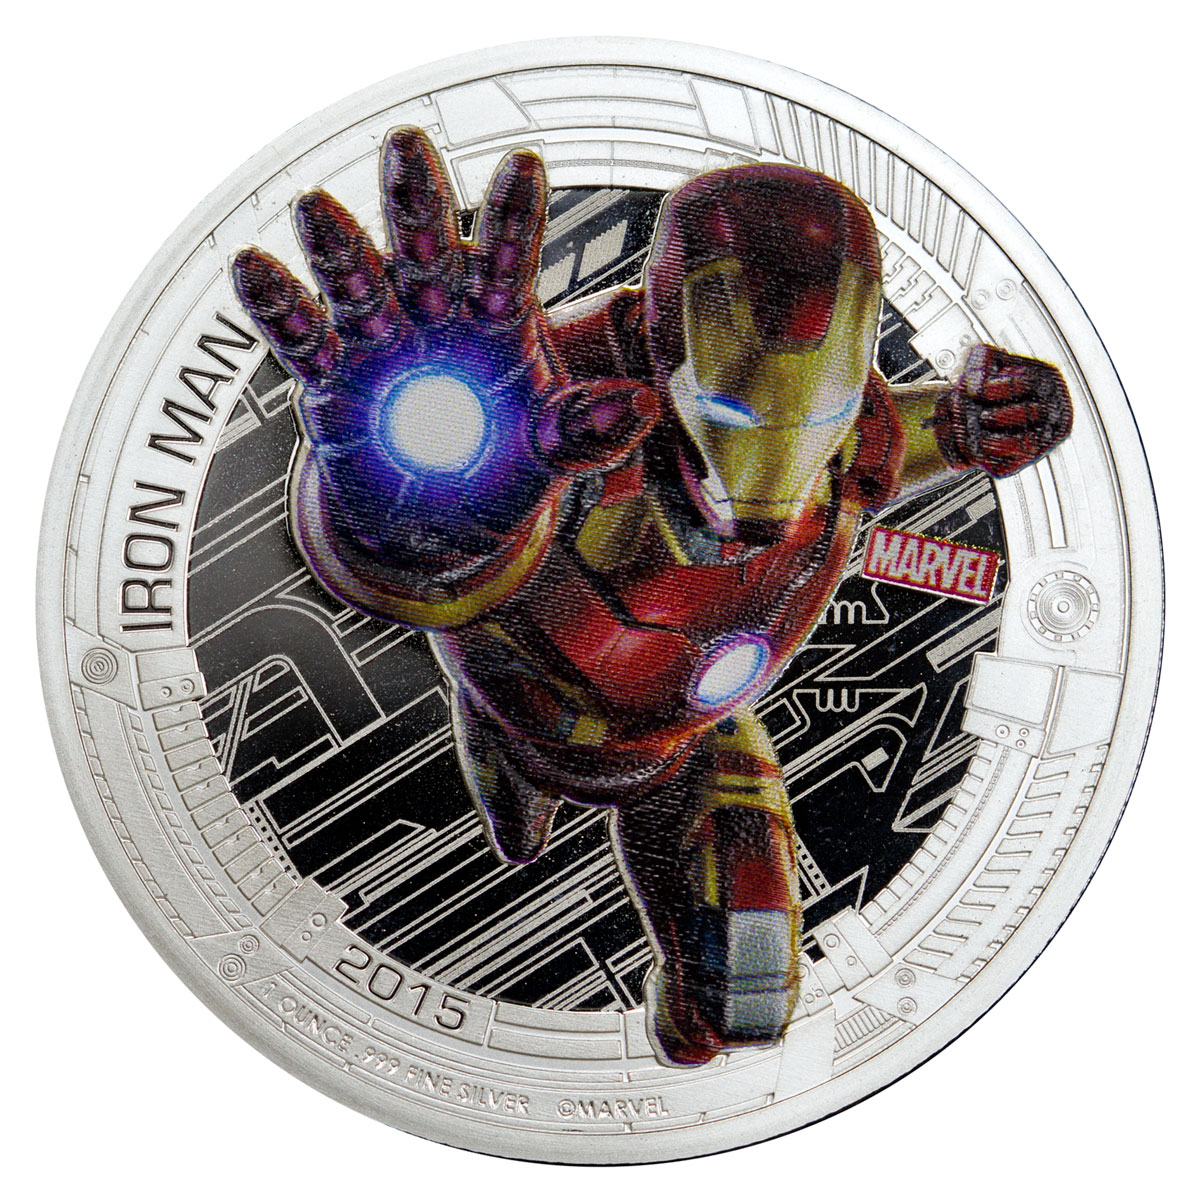 NCLT Coins Featuring Robert Downey, Jr. as Iron Man